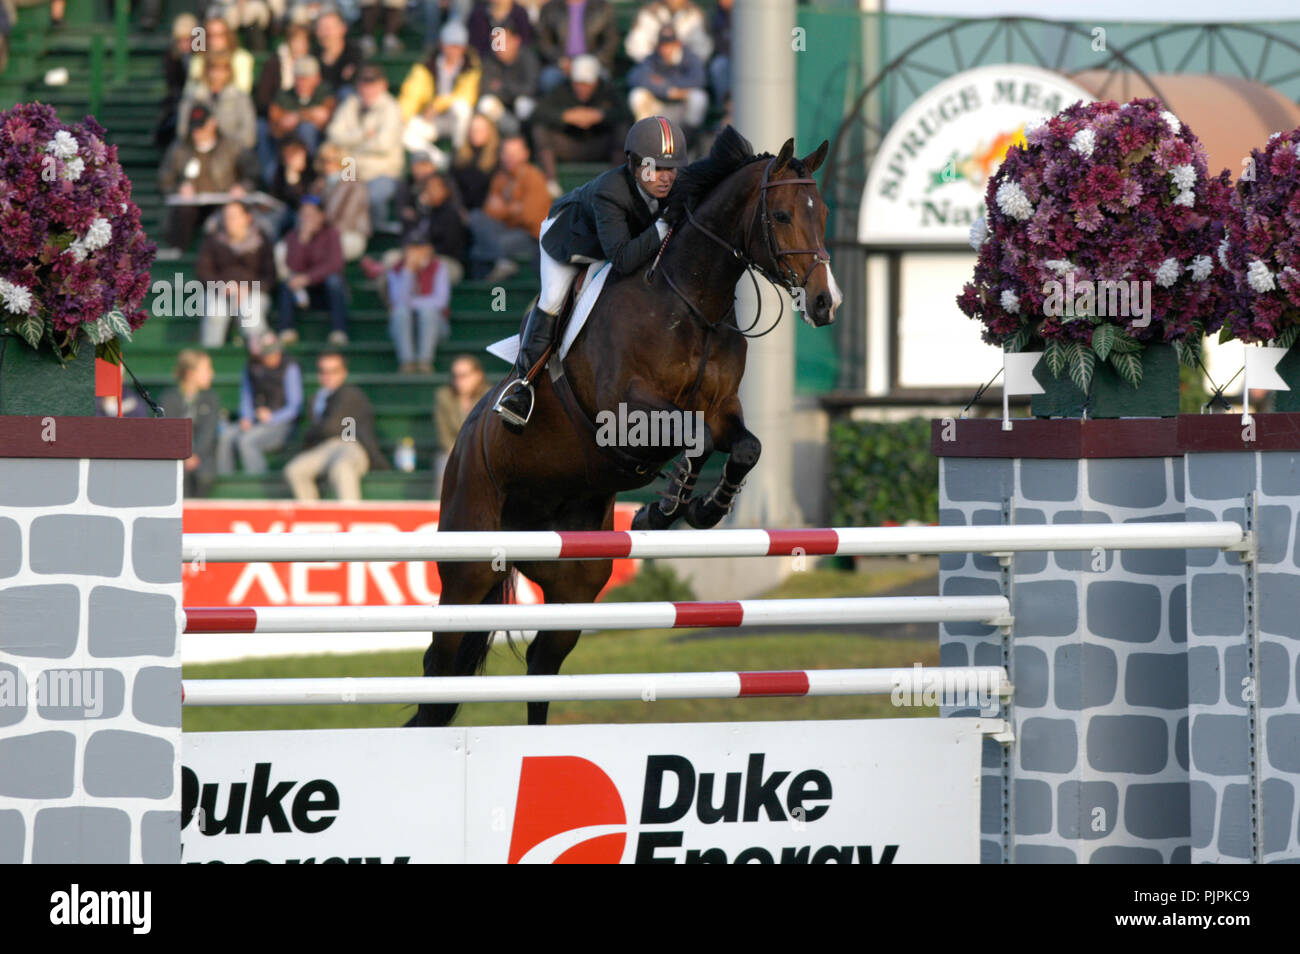 The National, Spruce Meadows June 2002, Beezie Madden (USA) riding Authentic Stock Photo